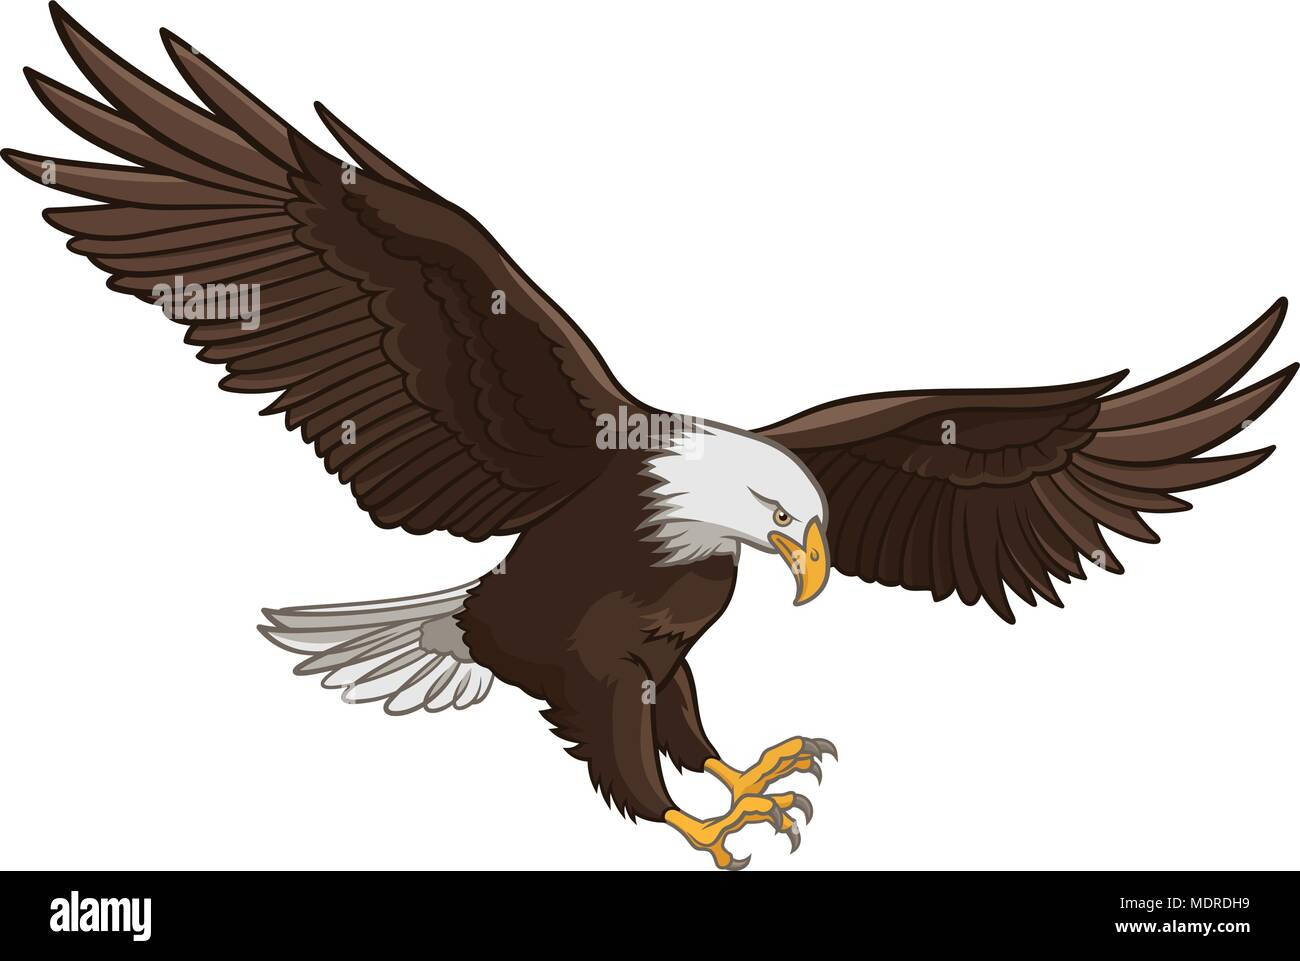 Wing Vector Vectors Stock Photos Images Bald Eagle Diagram Free Download Wiring Diagrams Pictures Isolated On White This Illustration Can Be Used As A Print